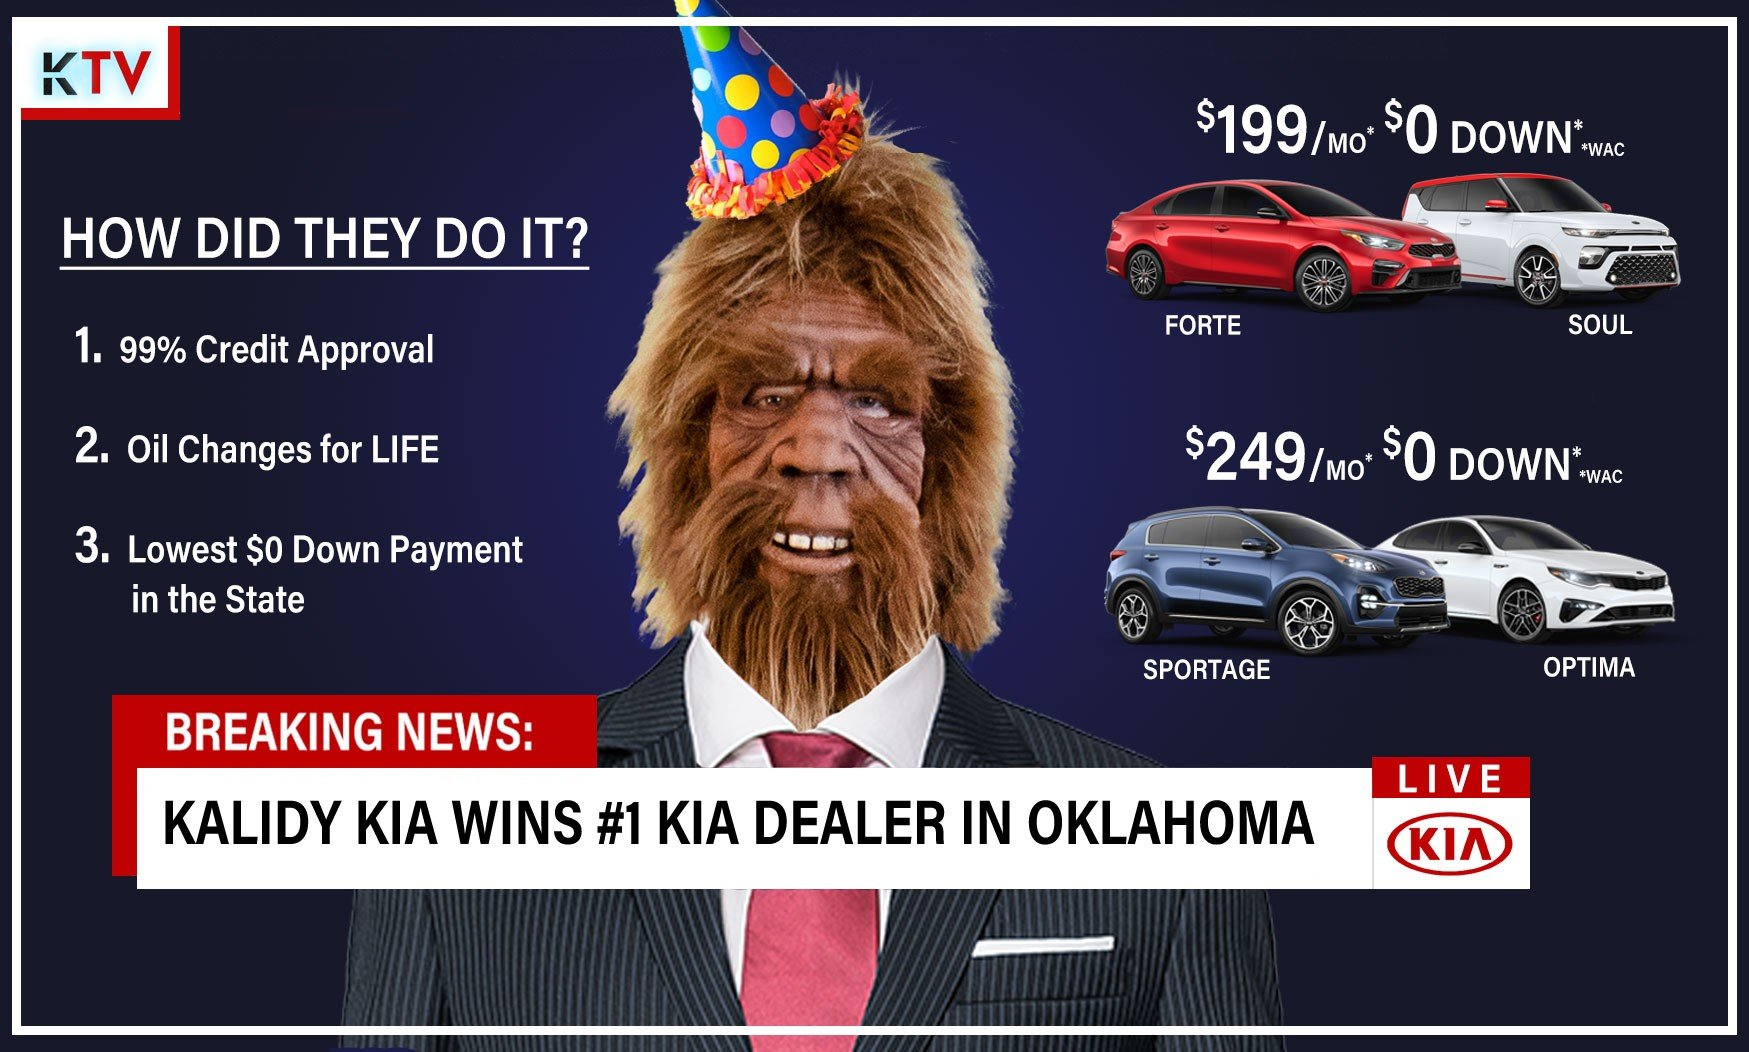 Kalidy Kia Wins #1 Kia Dealer in Oklahoma